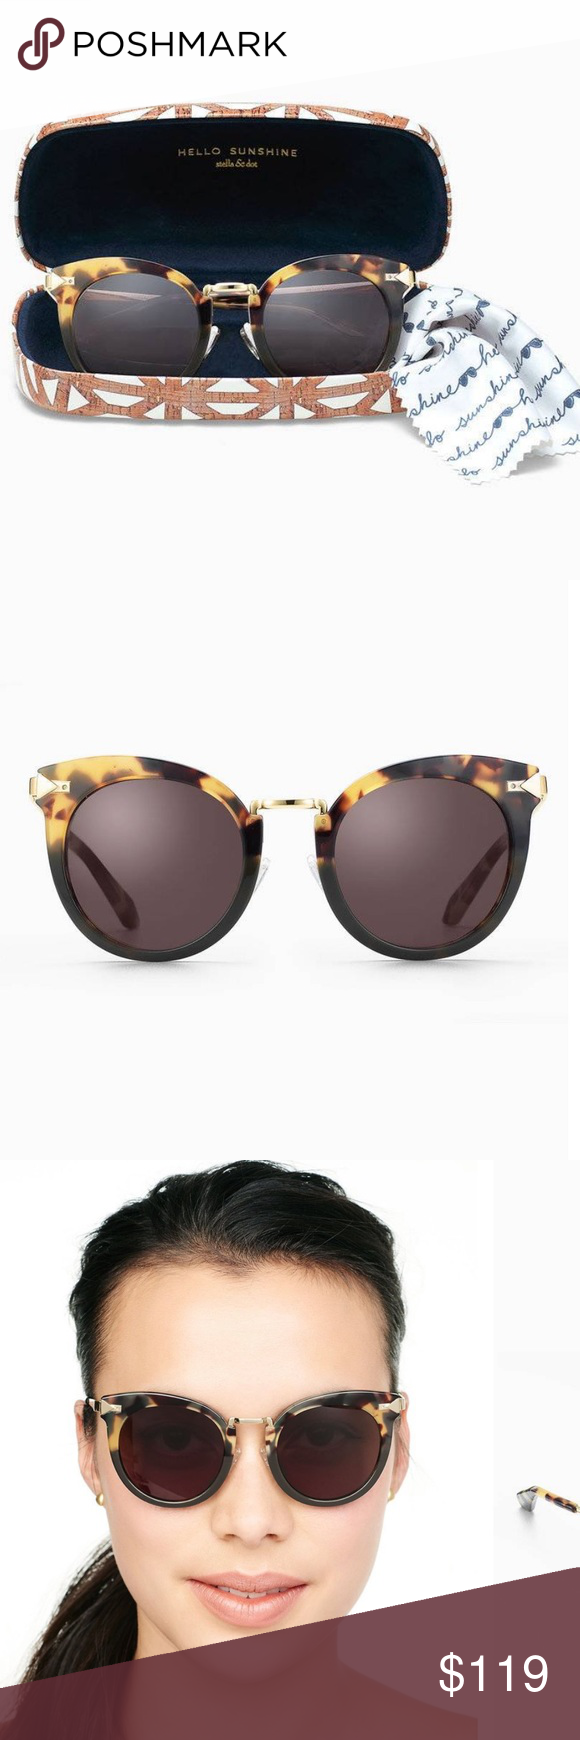 6a29f3a4c4a 🆕Wesley Sunglasses Add a dash of summer glam with these cat eye tortoise  sunglasses with